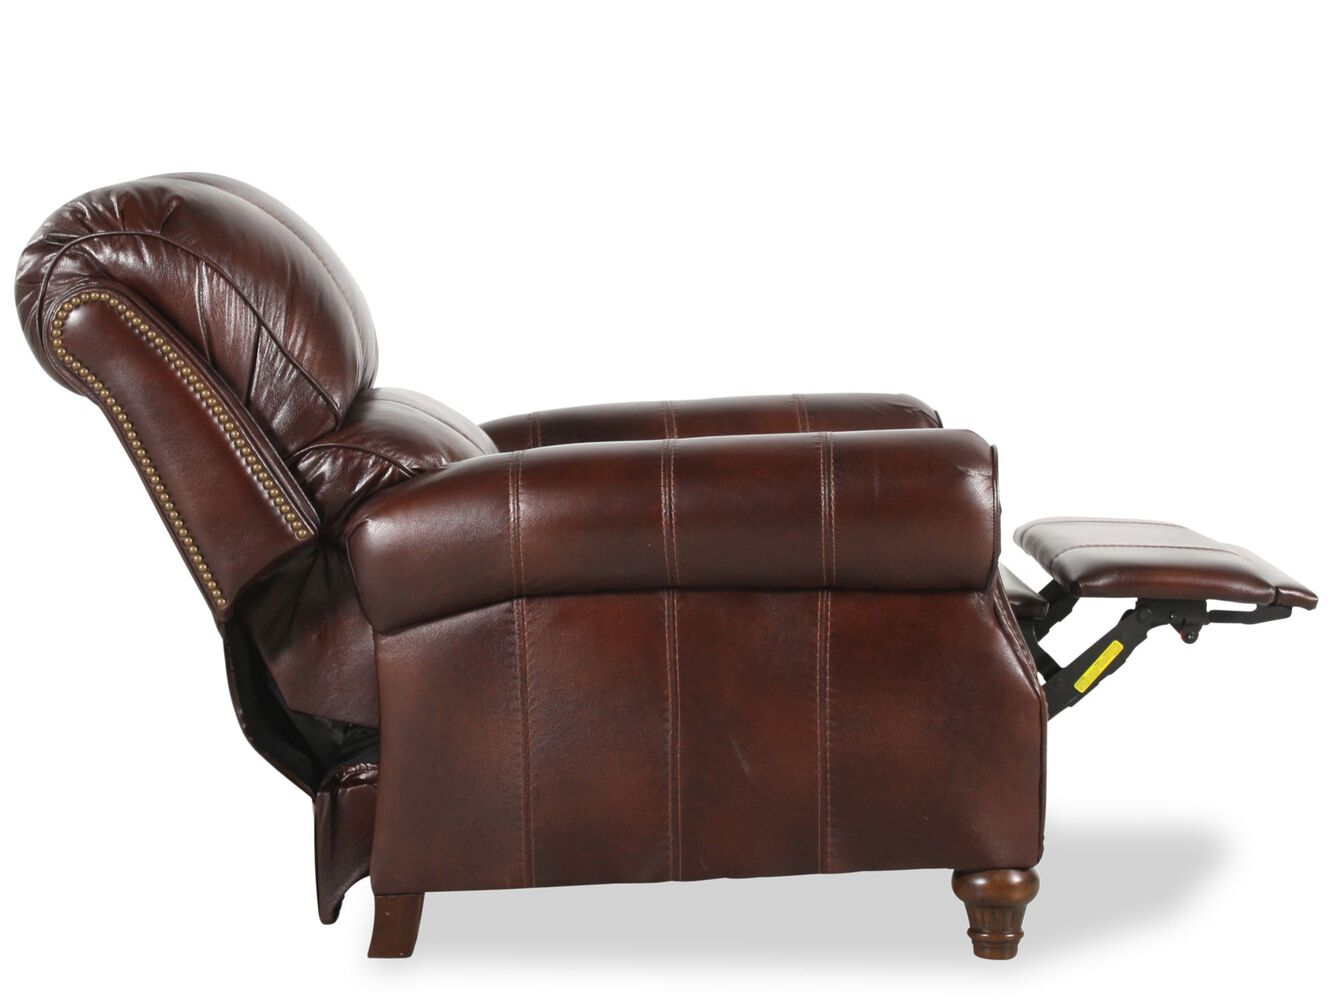 leg ashley signature style products design by push low transitional walworth recliner accent item number